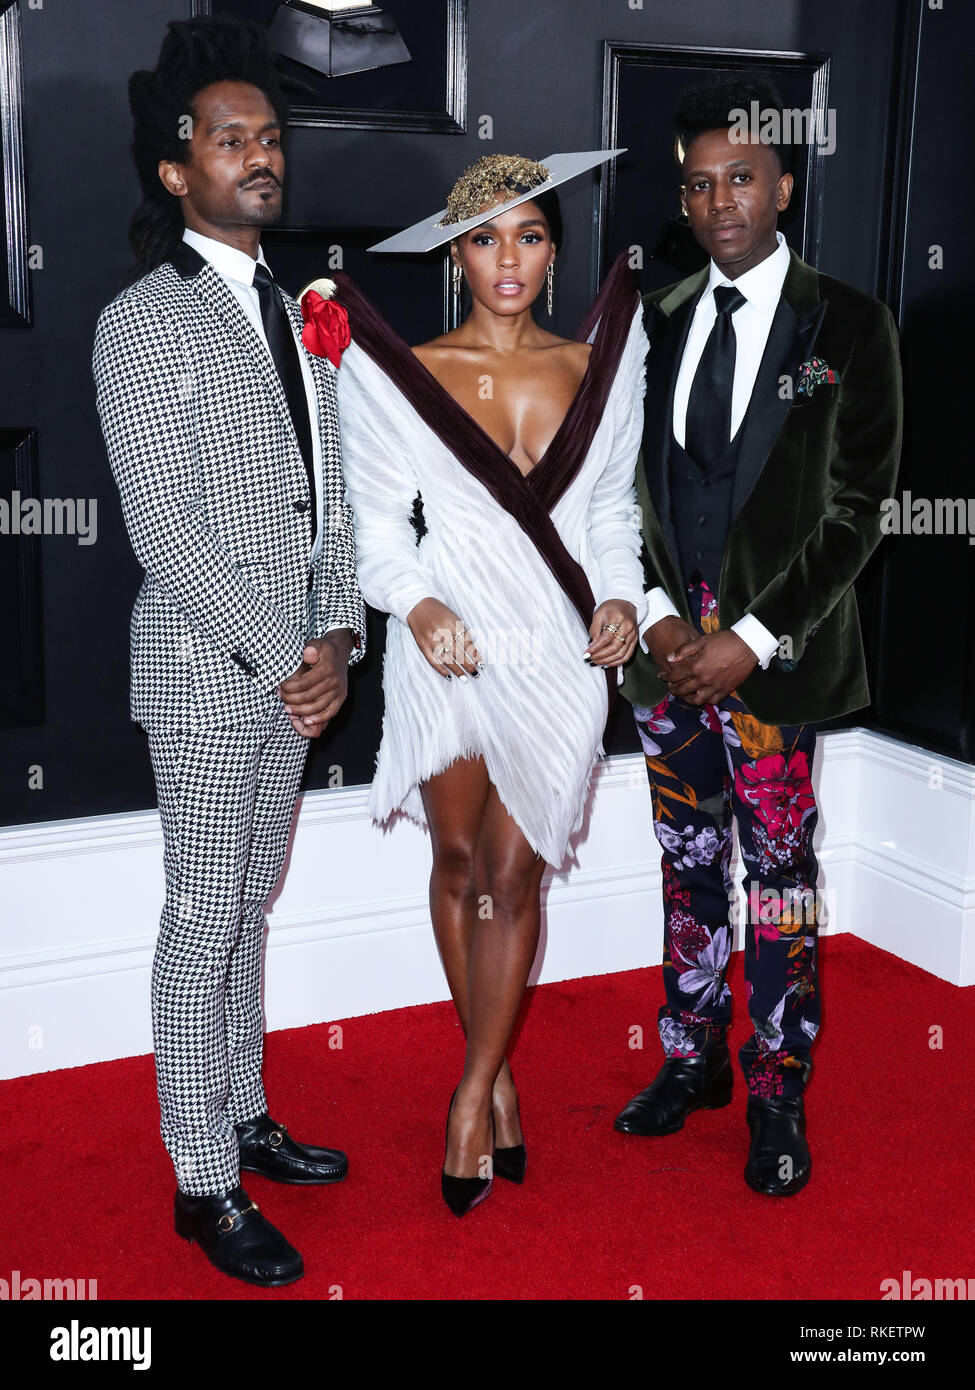 03a422336b2 LOS ANGELES, CA, USA - FEBRUARY 10: Nate 'Rocket' Wonde, Janelle Monae and  Chuck Lightning arrive at the 61st Annual GRAMMY Awards held at Staples  Center ...